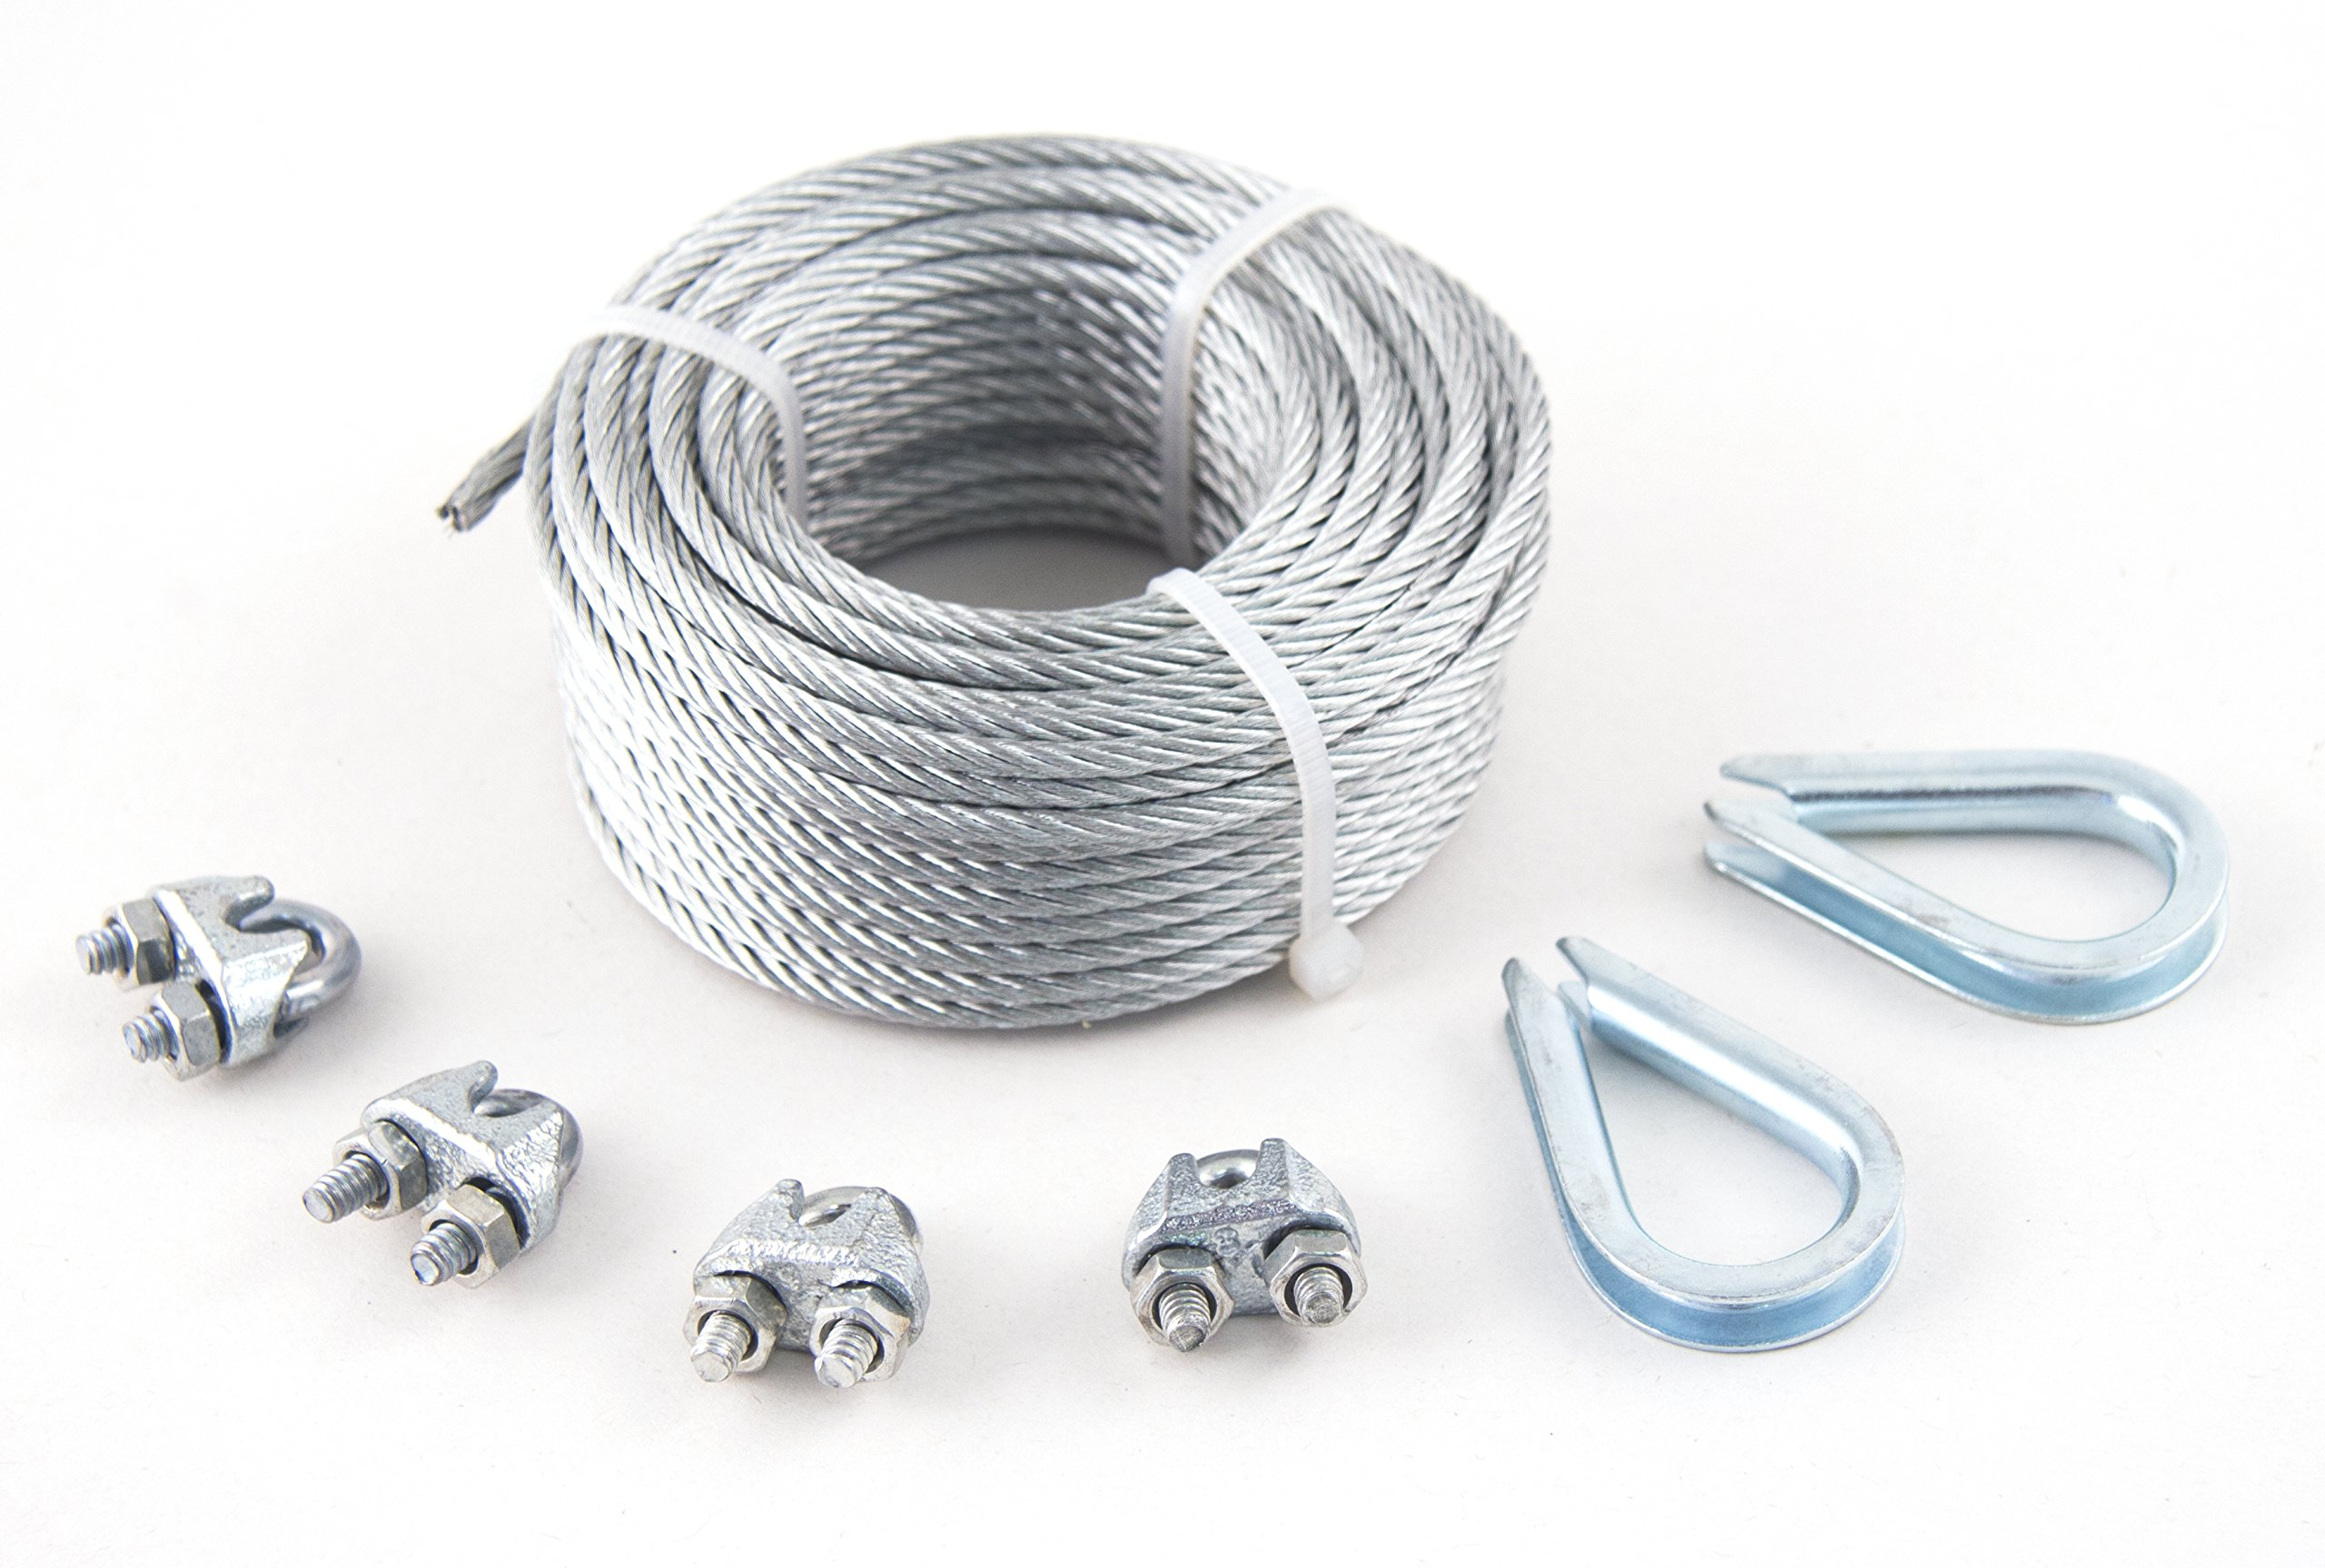 KingChain 504711 1/8'' x 50' Galvanized Aircraft Cable Kit